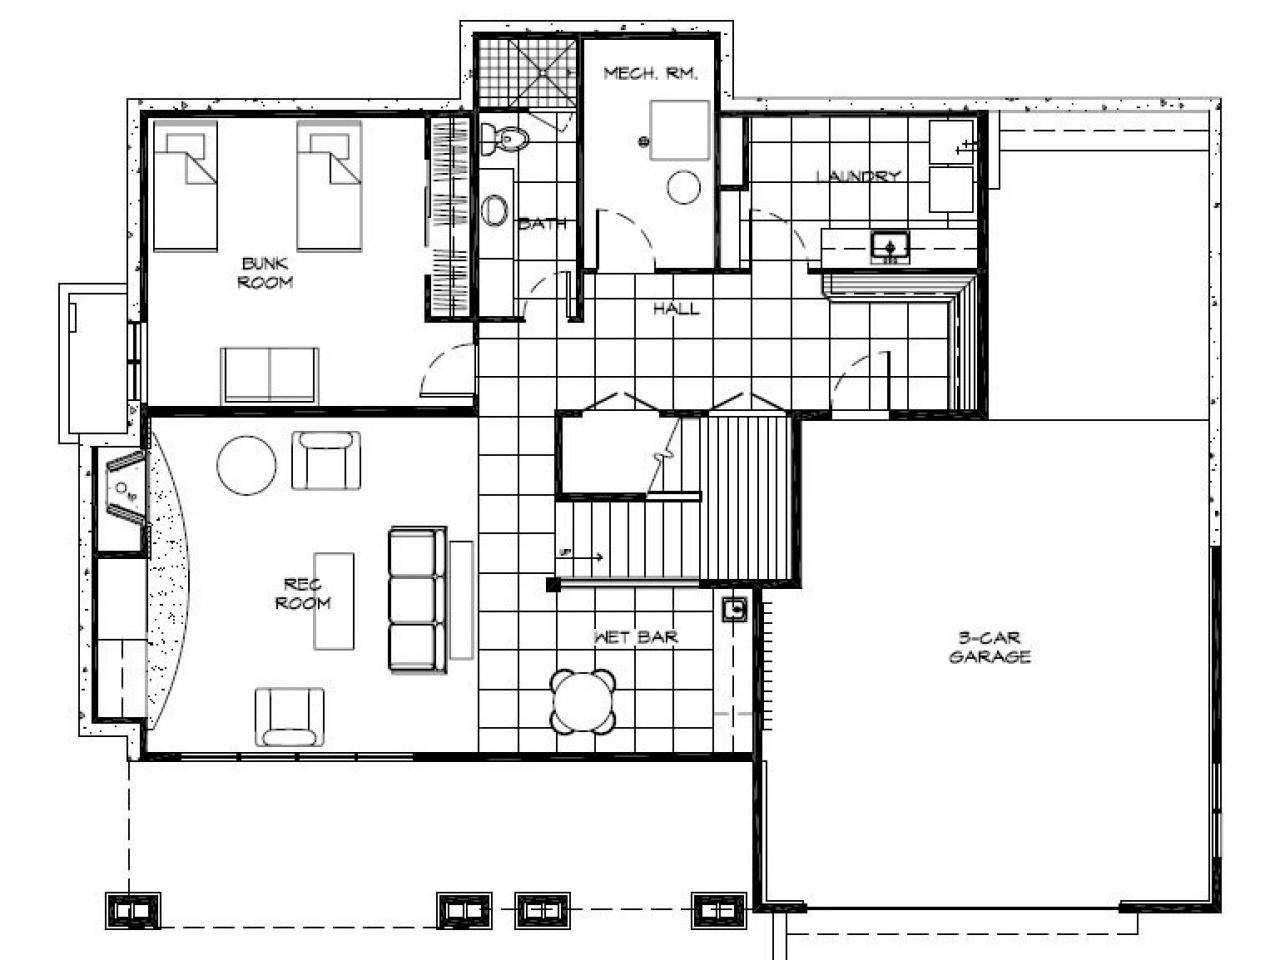 Amazoncom hgtv home design remodeling suite floor plans from hgtv dream homes plans 2nd level floor plans hgtv dream home house malvernweather Choice Image